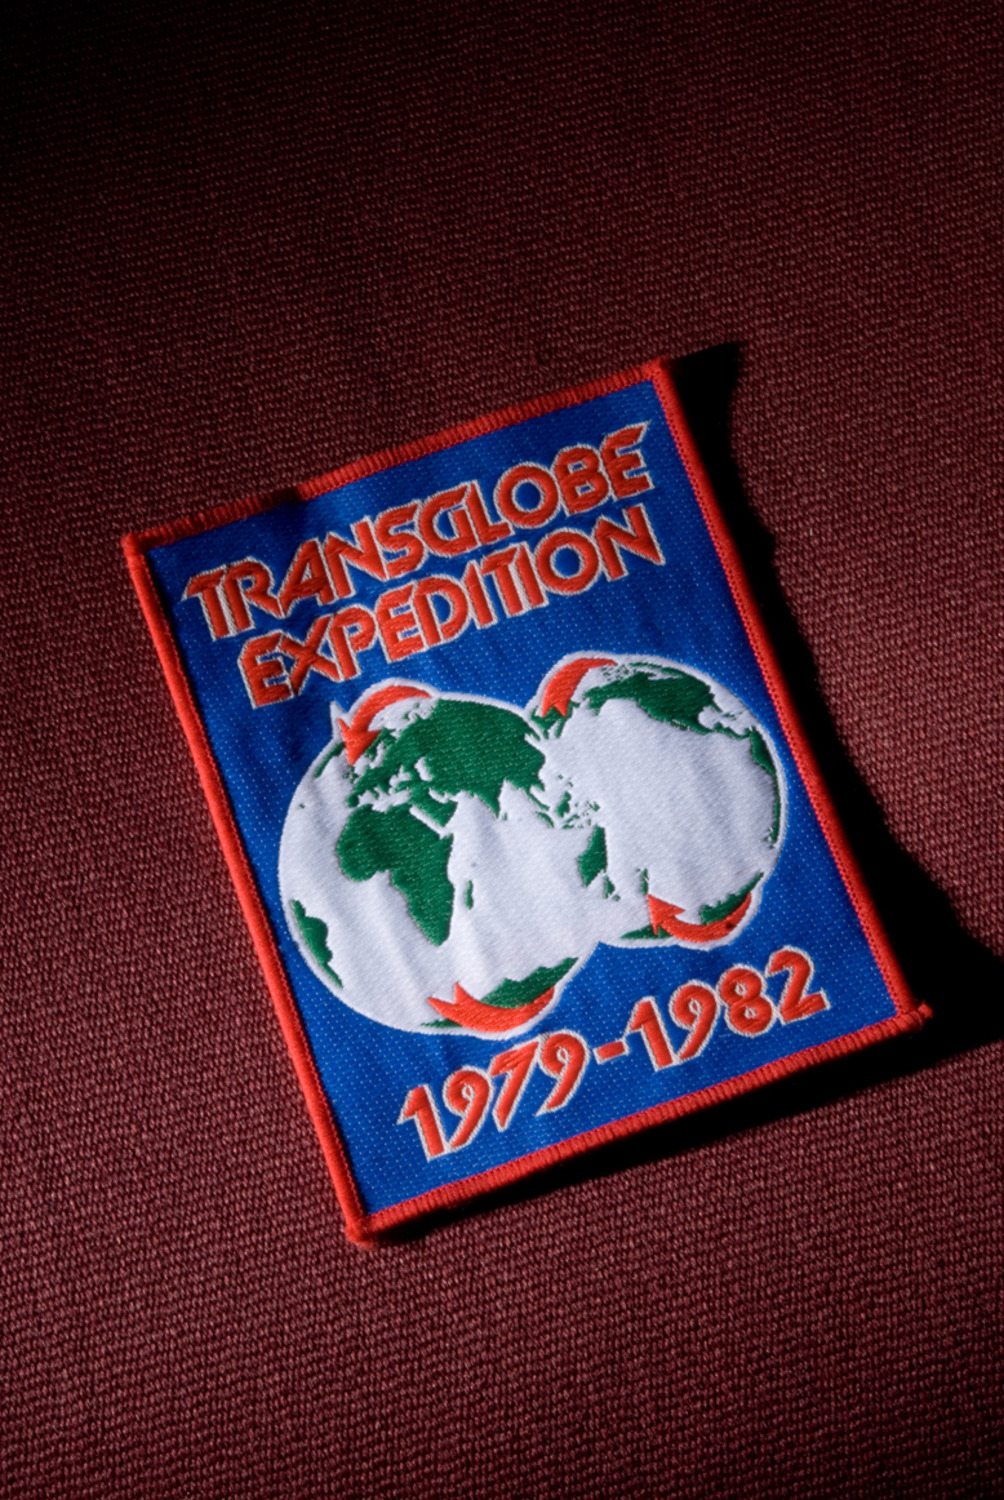 Full_museum_-_transglobe_expedition_patch